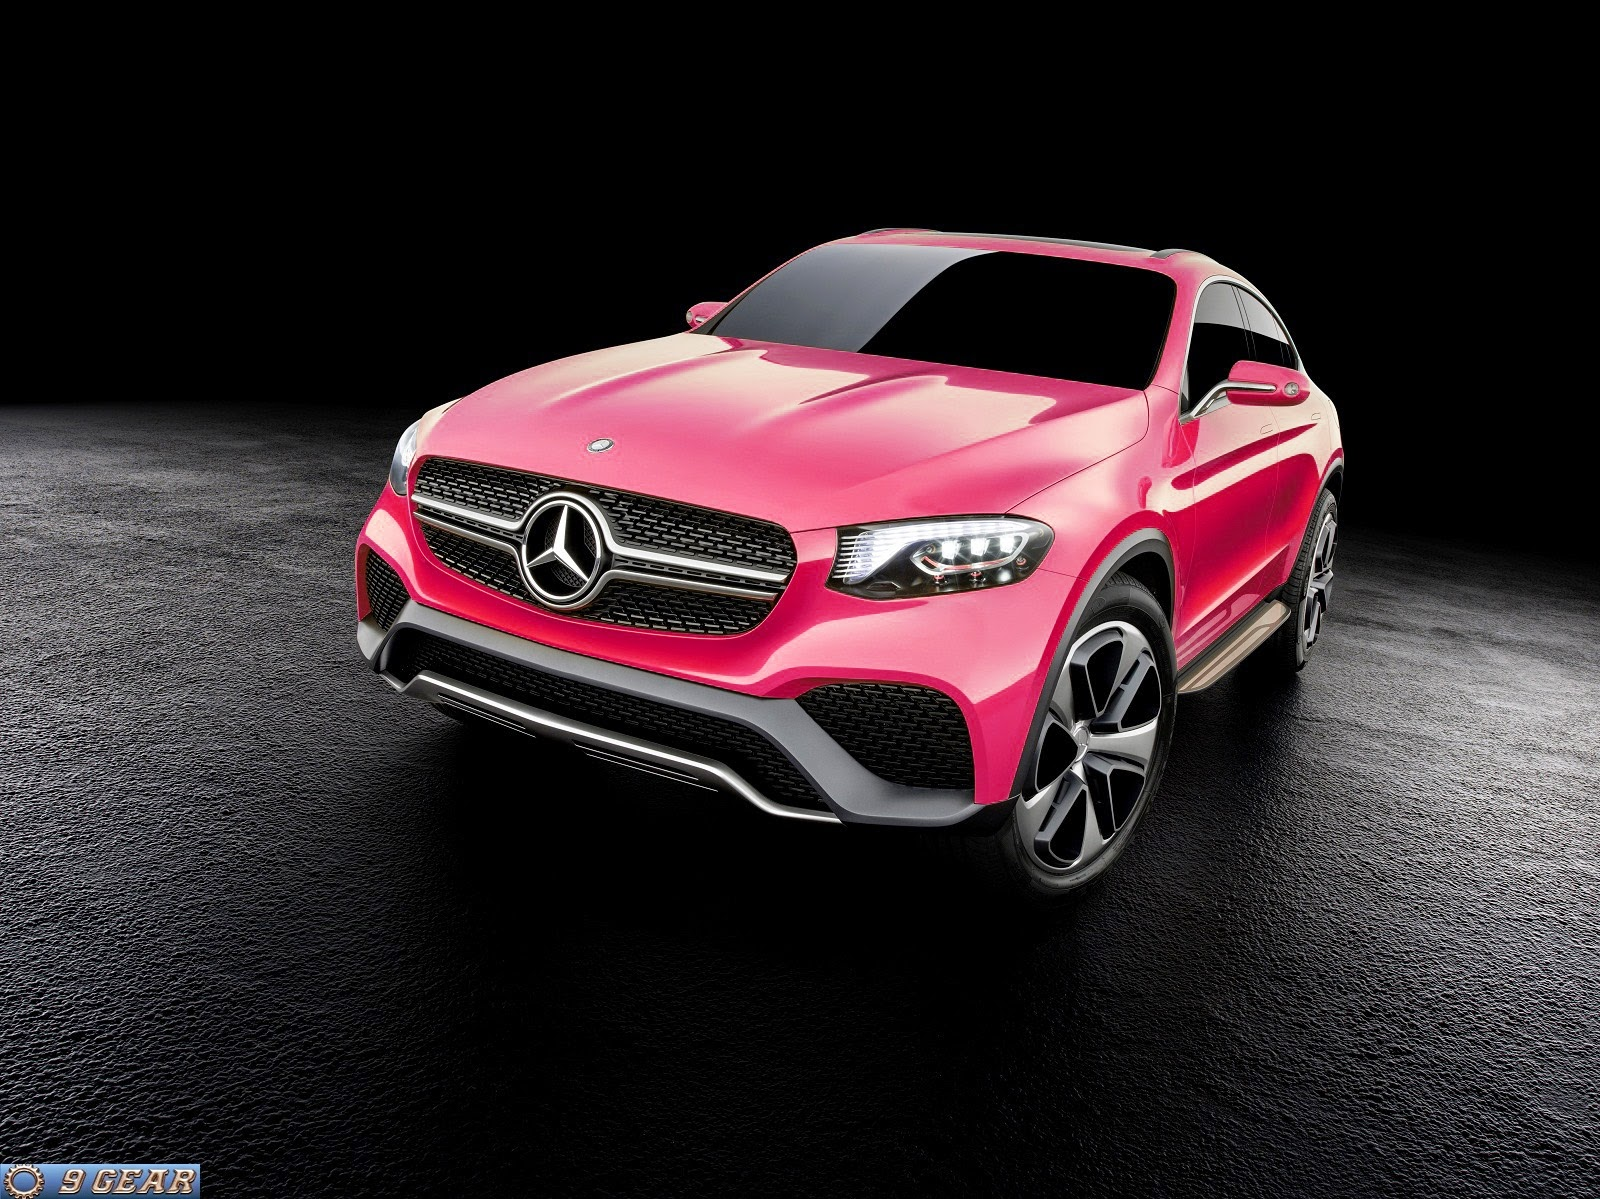 Car reviews new car pictures for 2018 2019 new for New mercedes benz concept